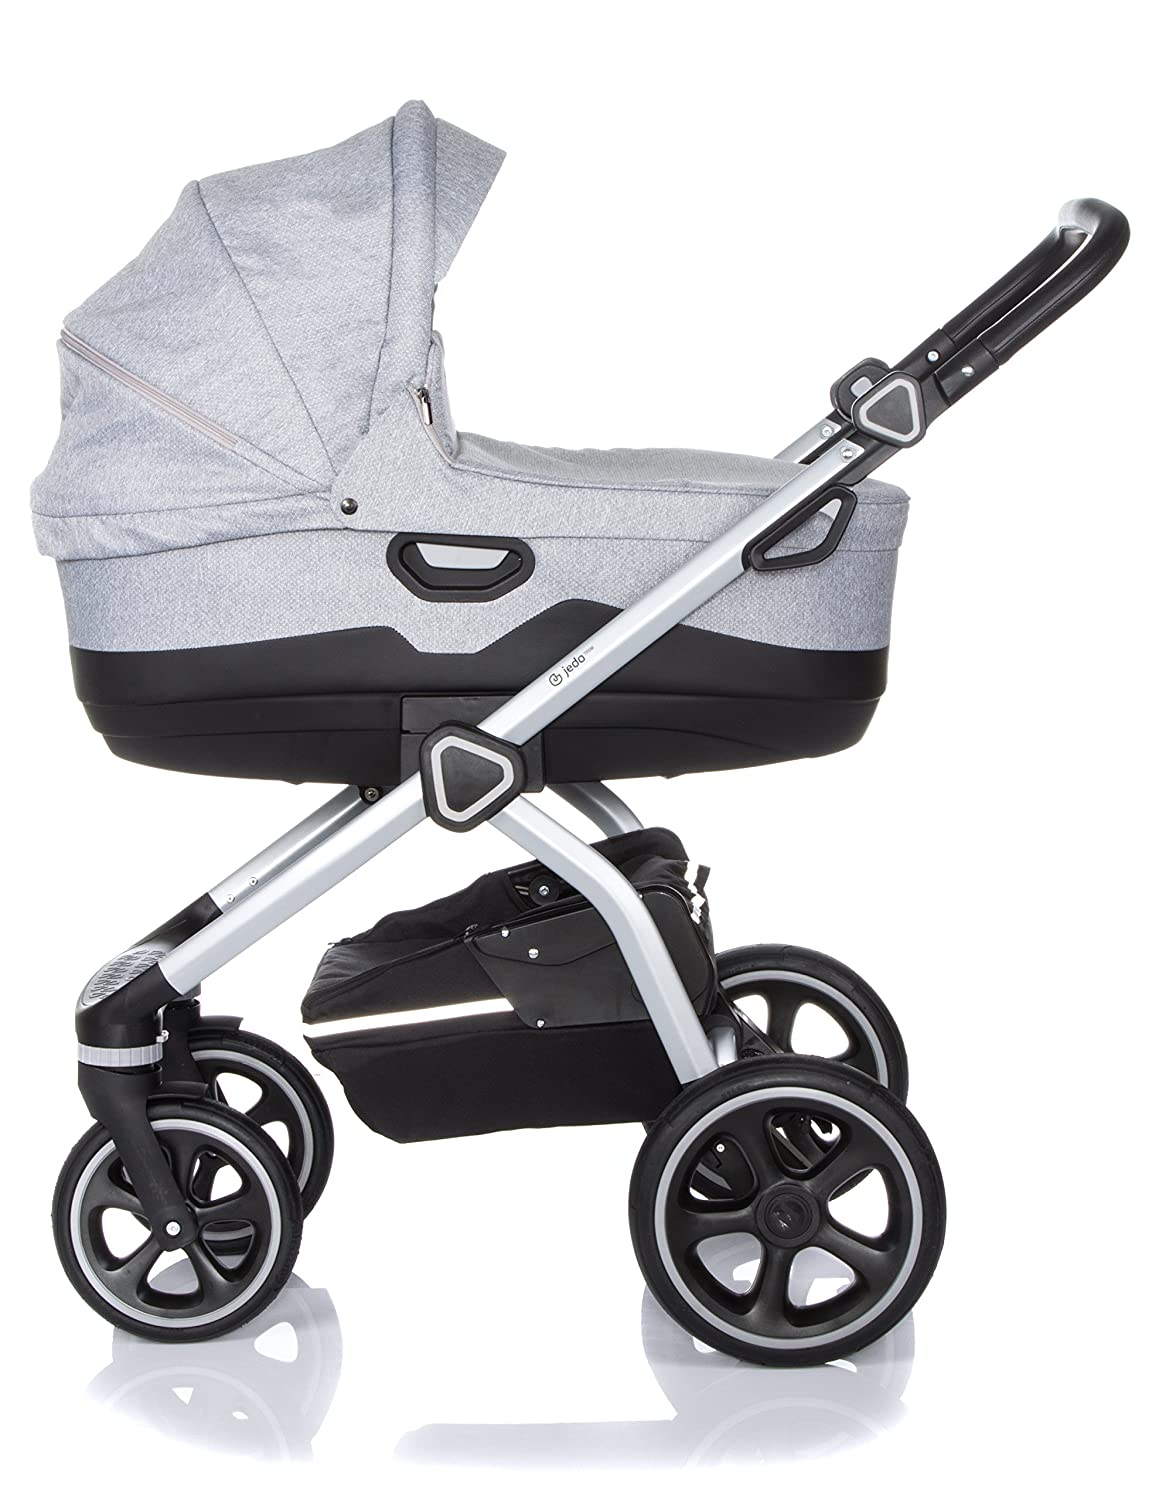 Baby stroller Jedo: photo and review of models, reviews 45